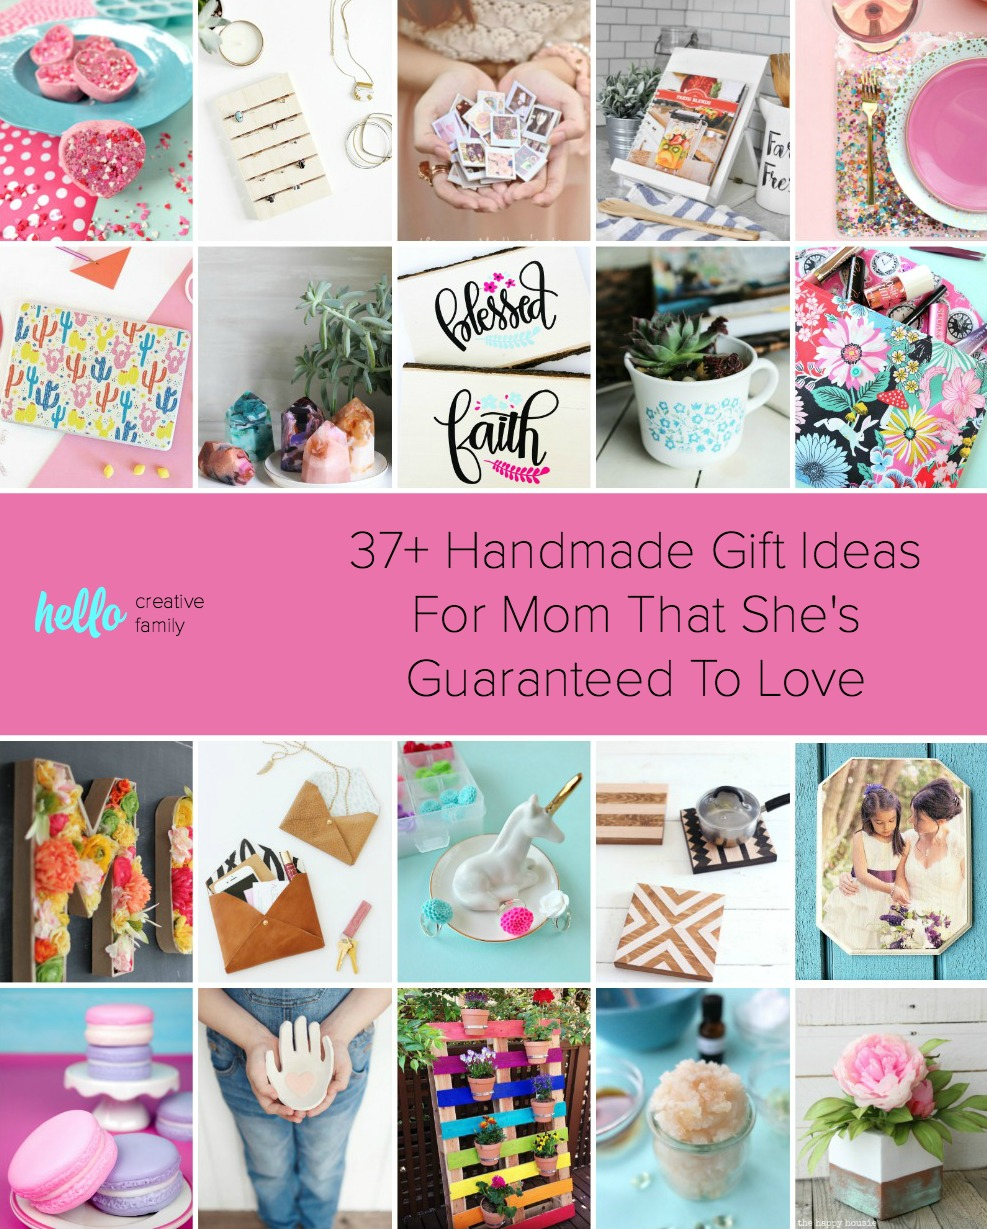 37+ Handmade Gift Ideas For Dads (many of which take 60 minutes or ...